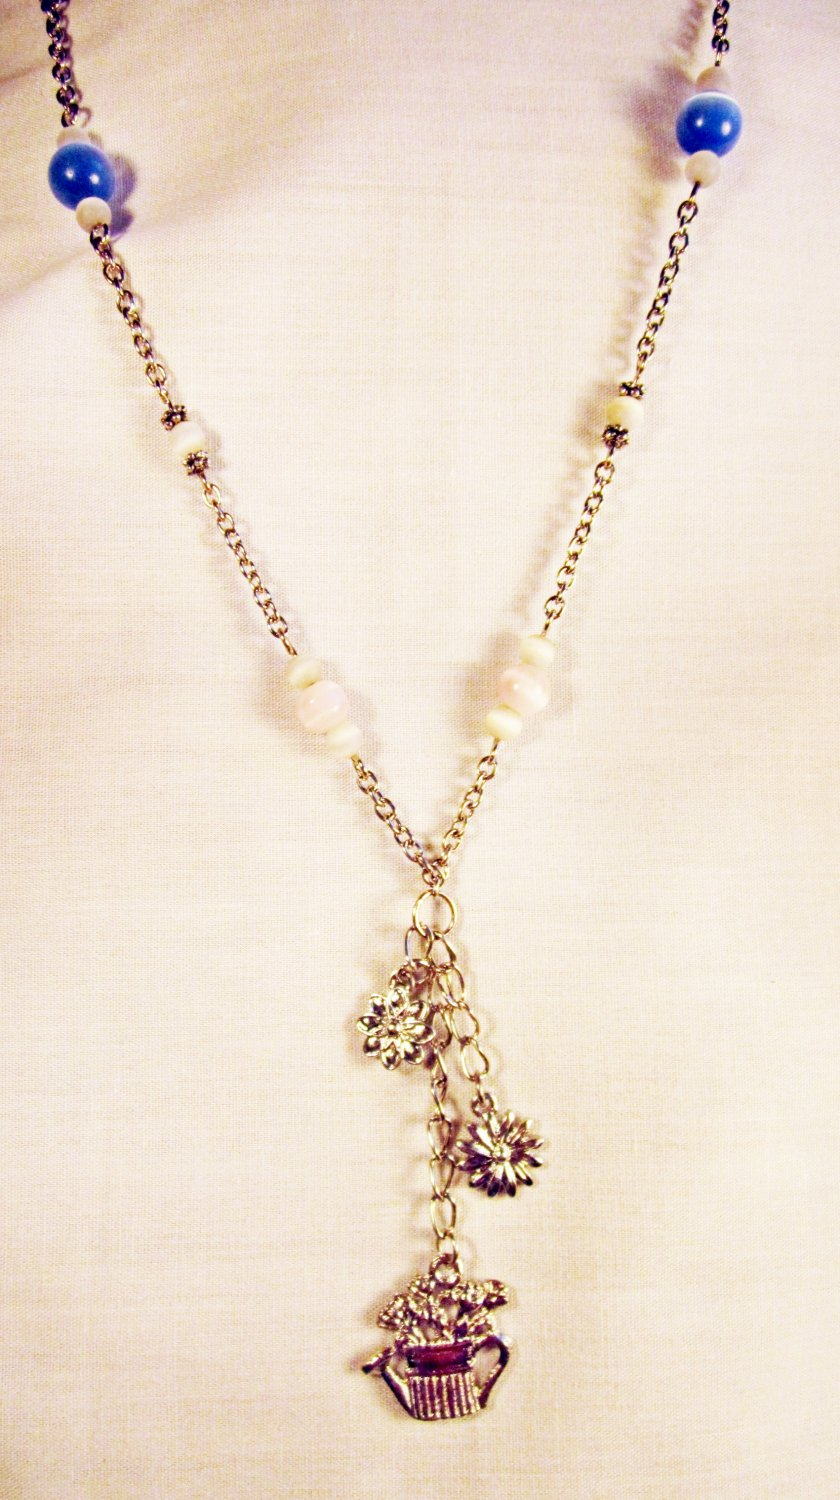 N11 - pastel colored beaded necklace